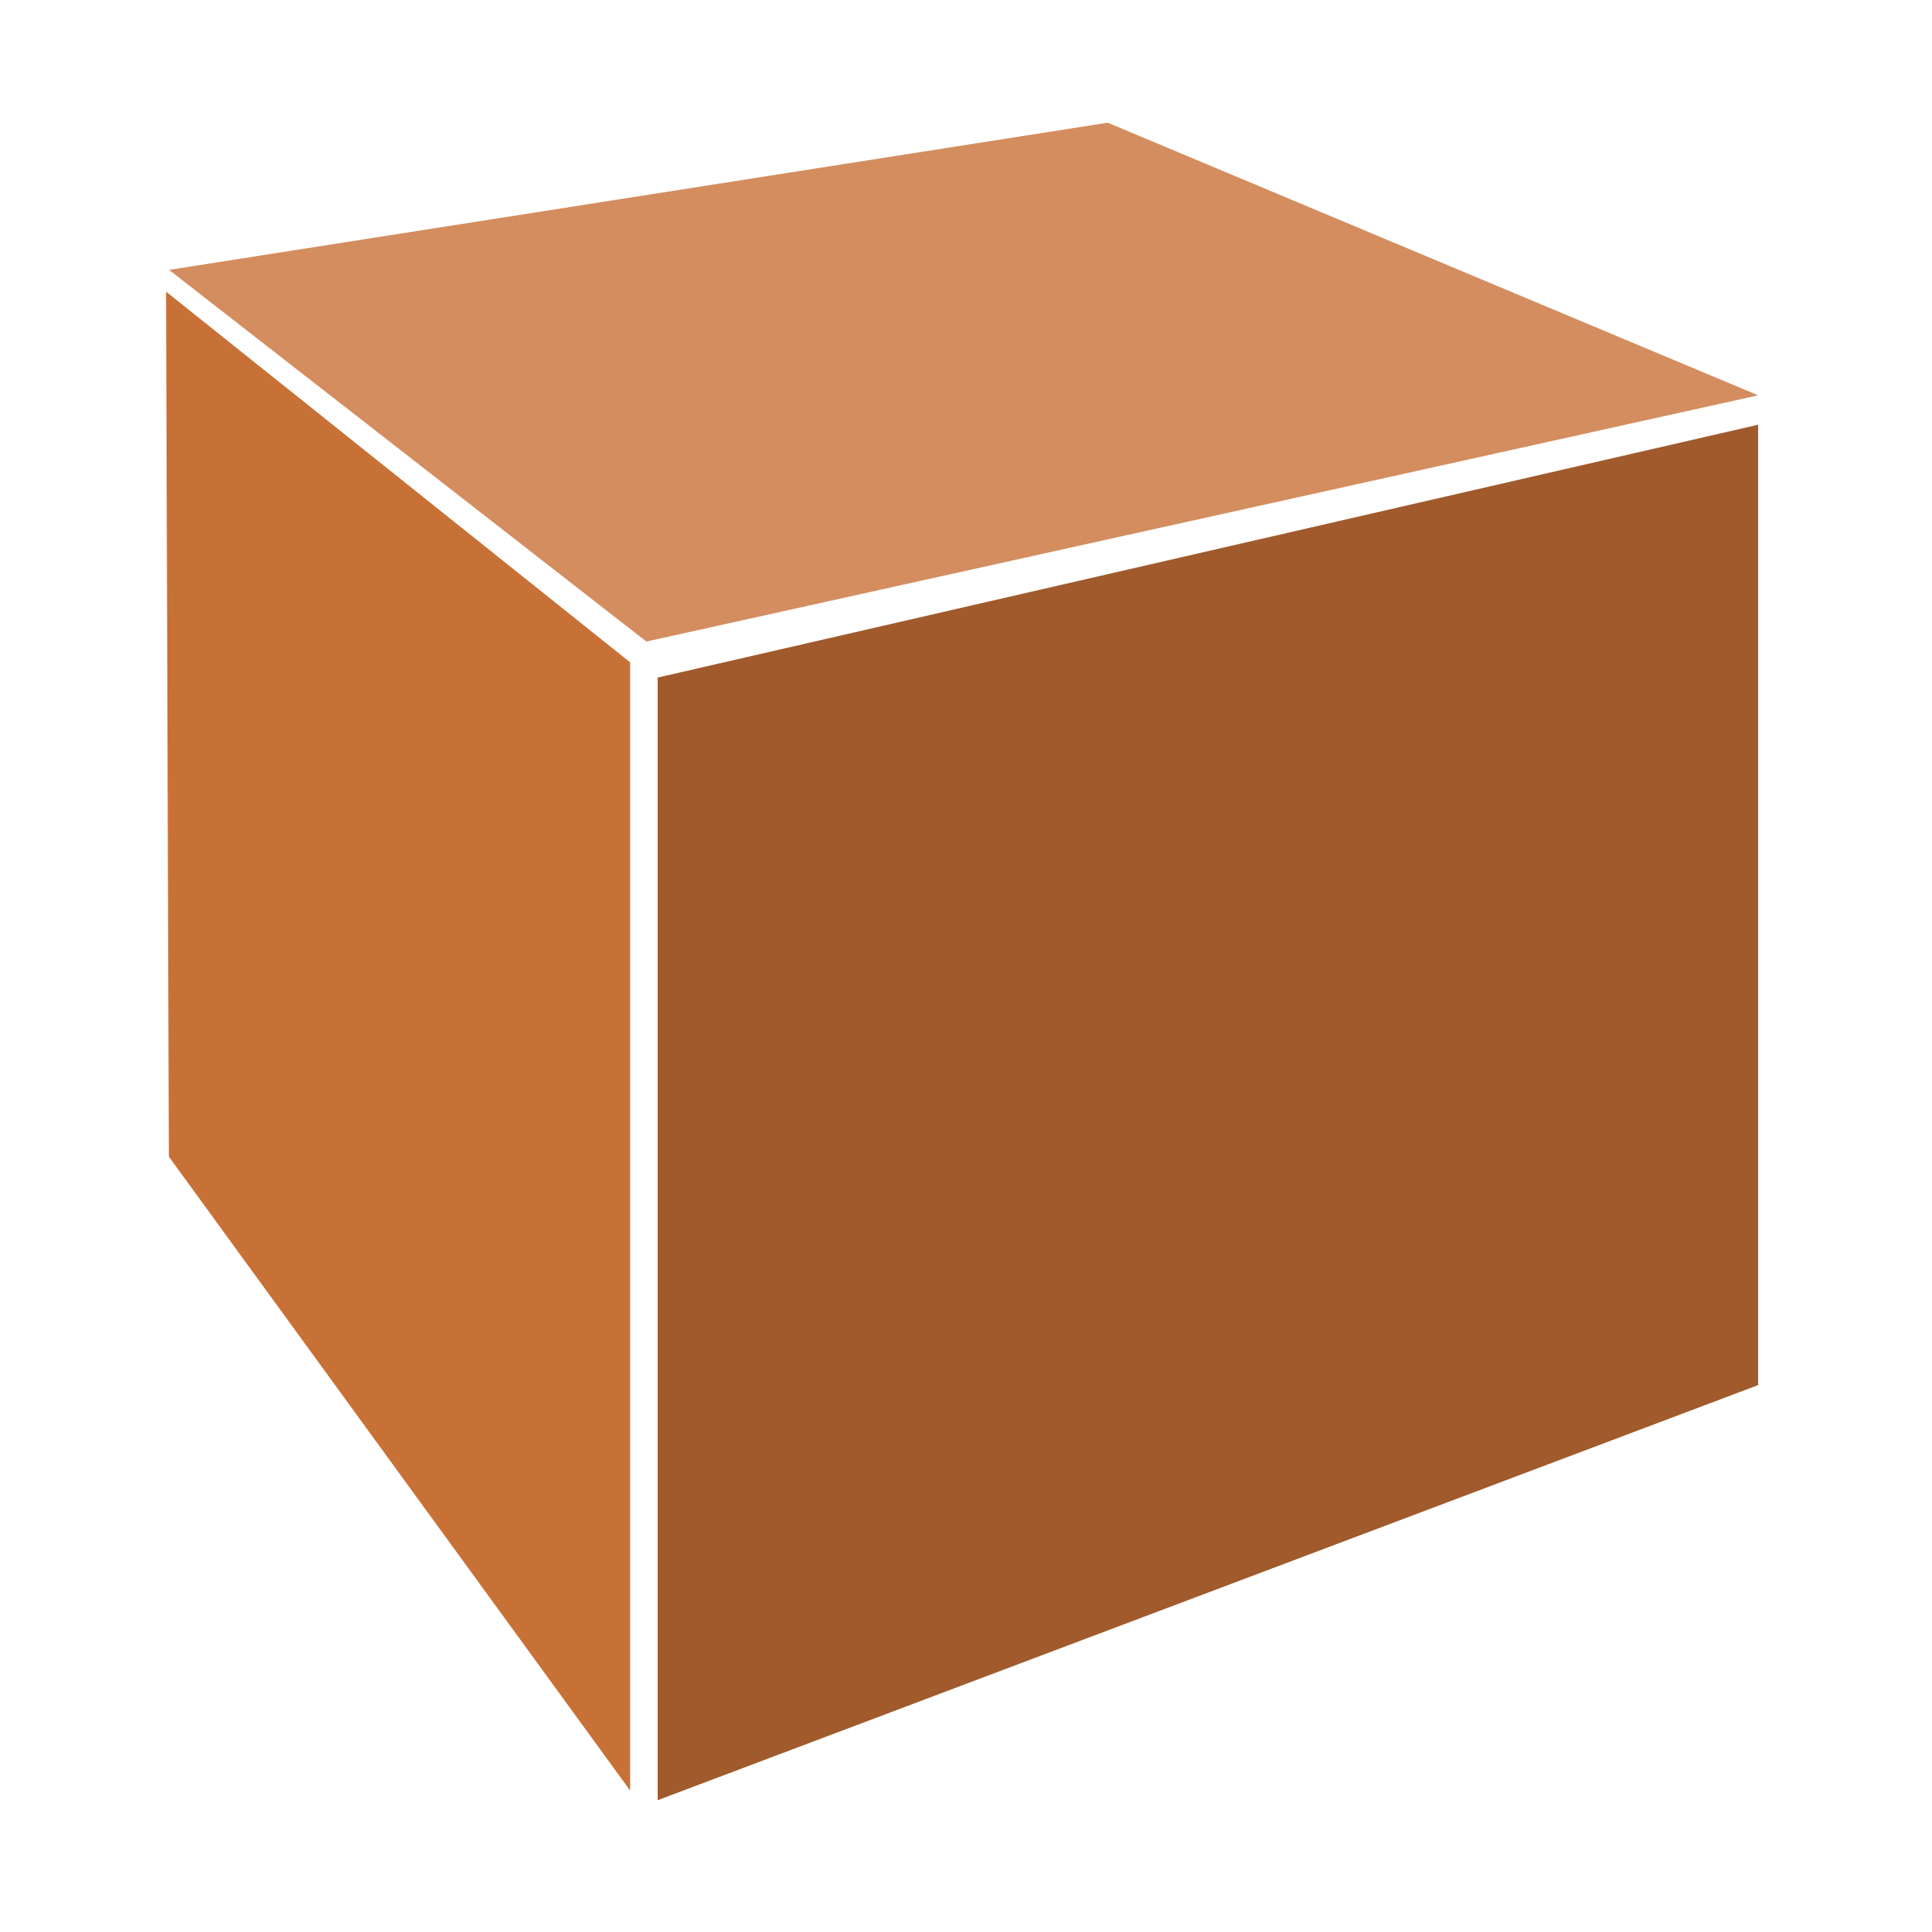 a Box by akoka